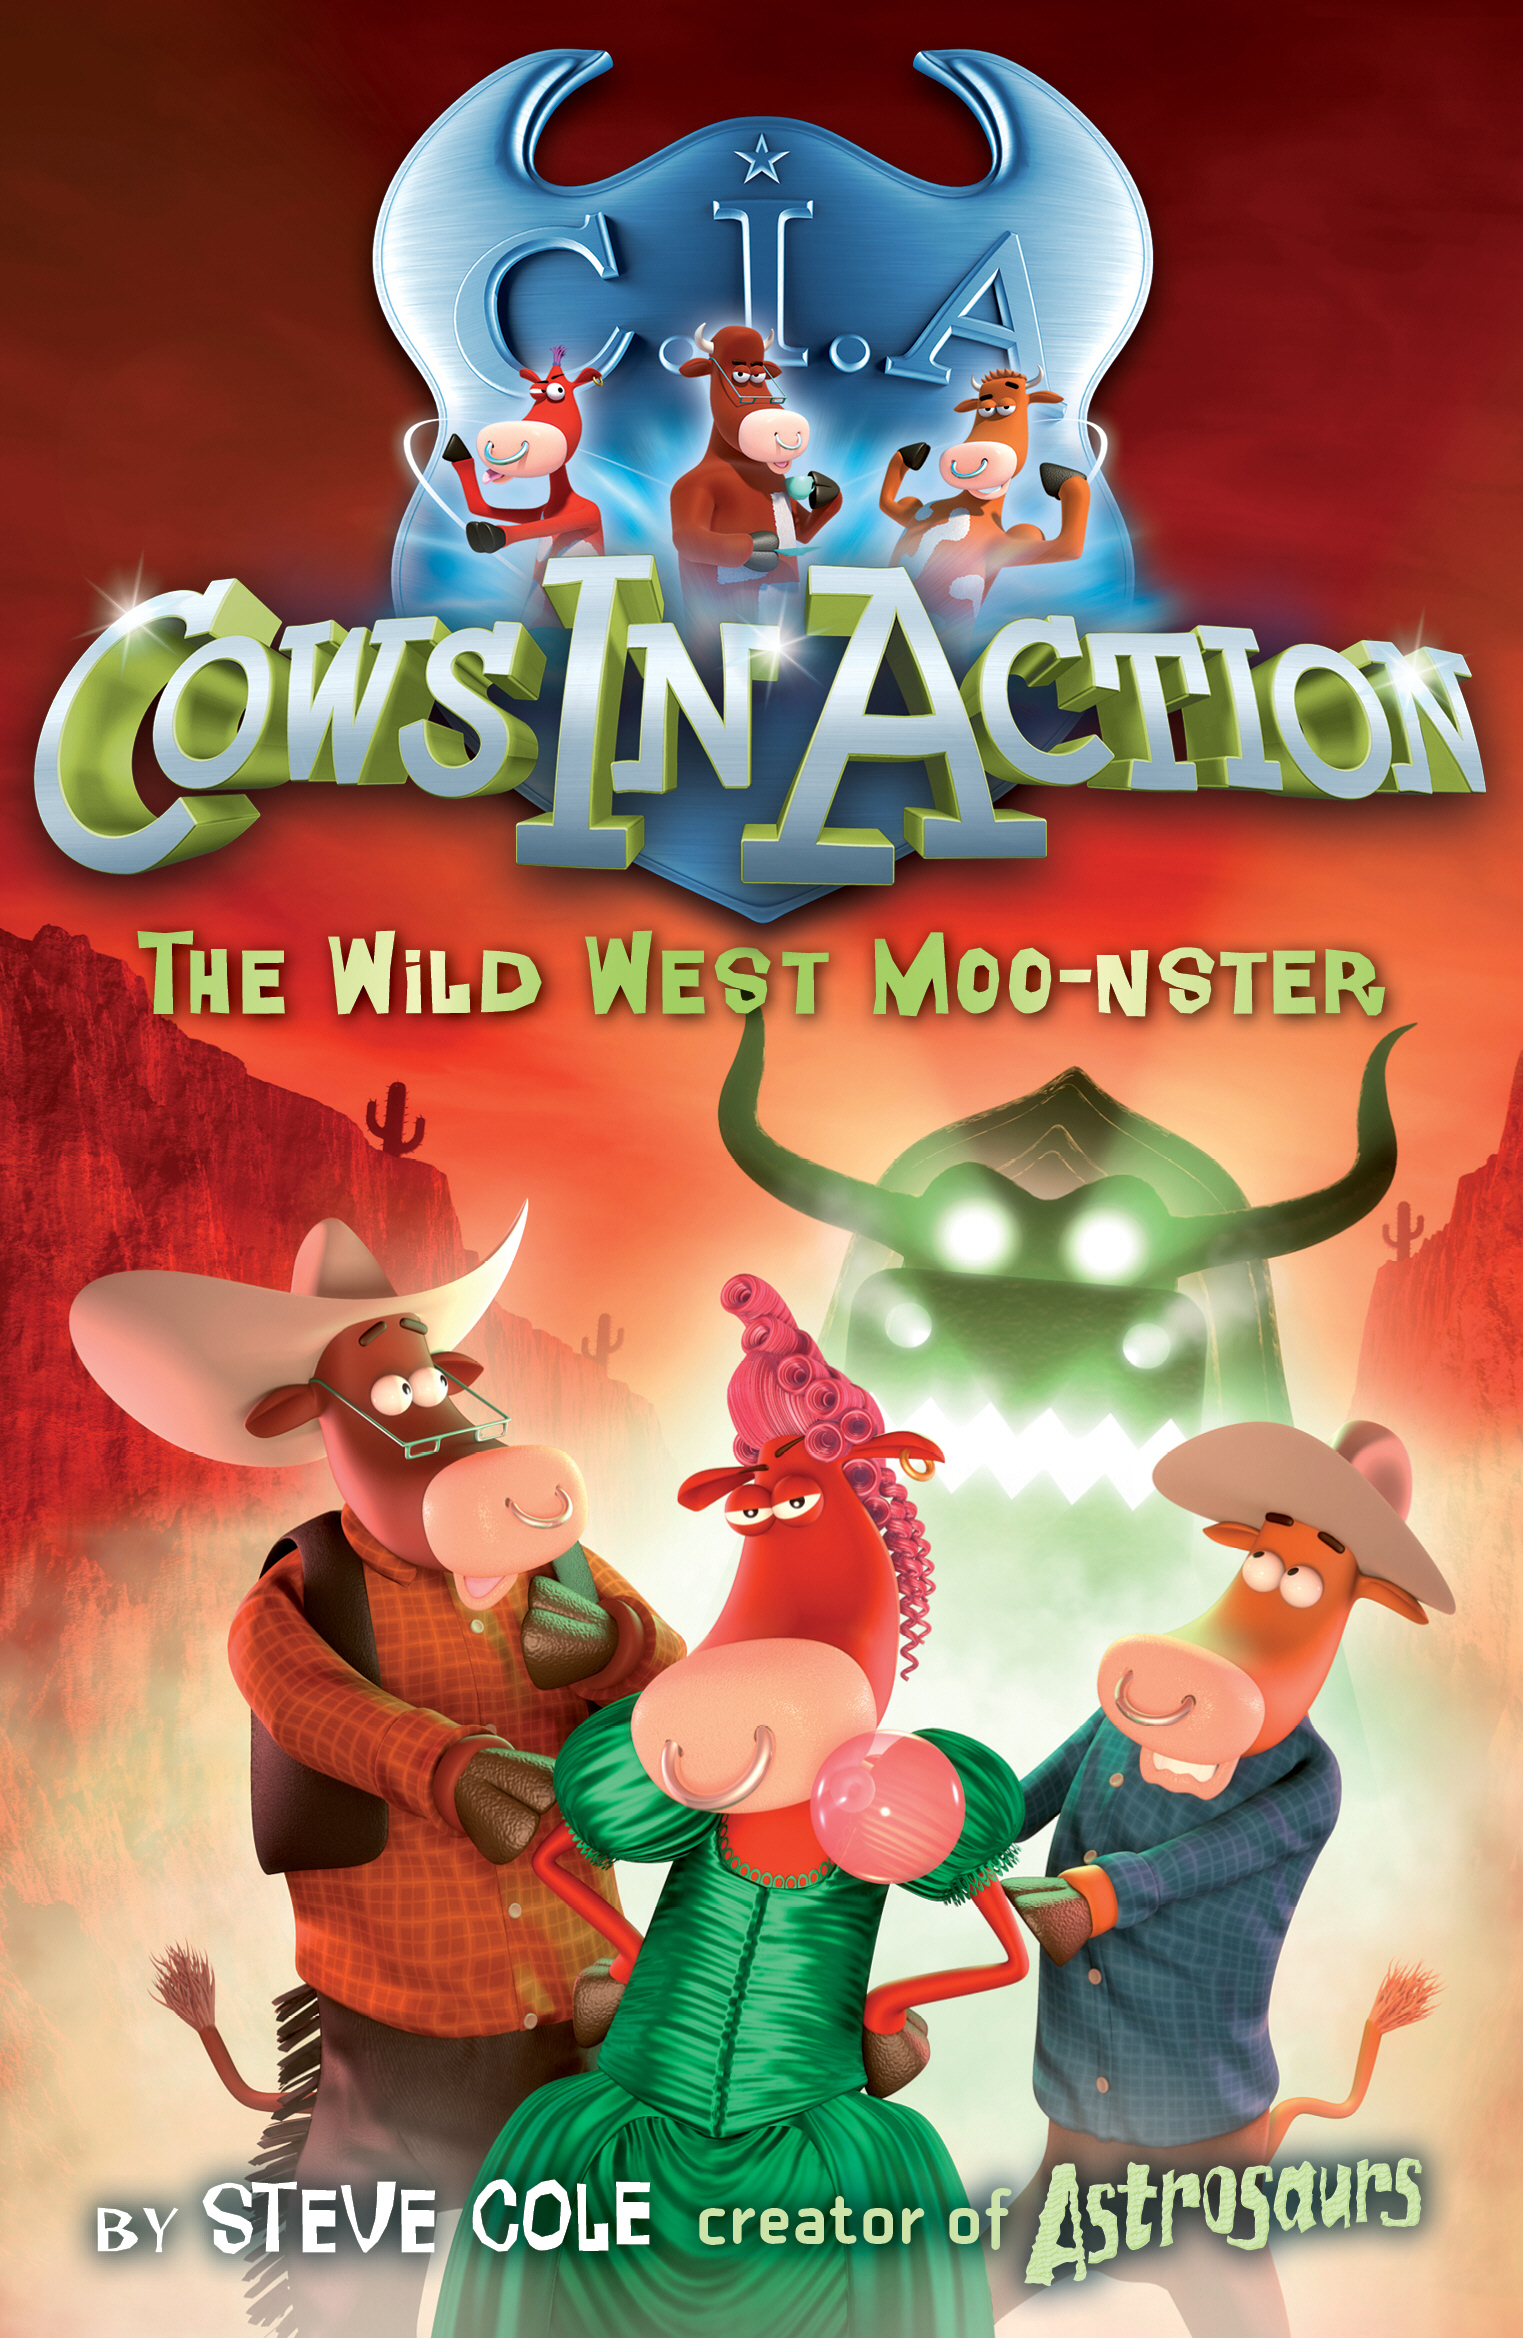 Cows In Action 4: The Wild West Moo-nster